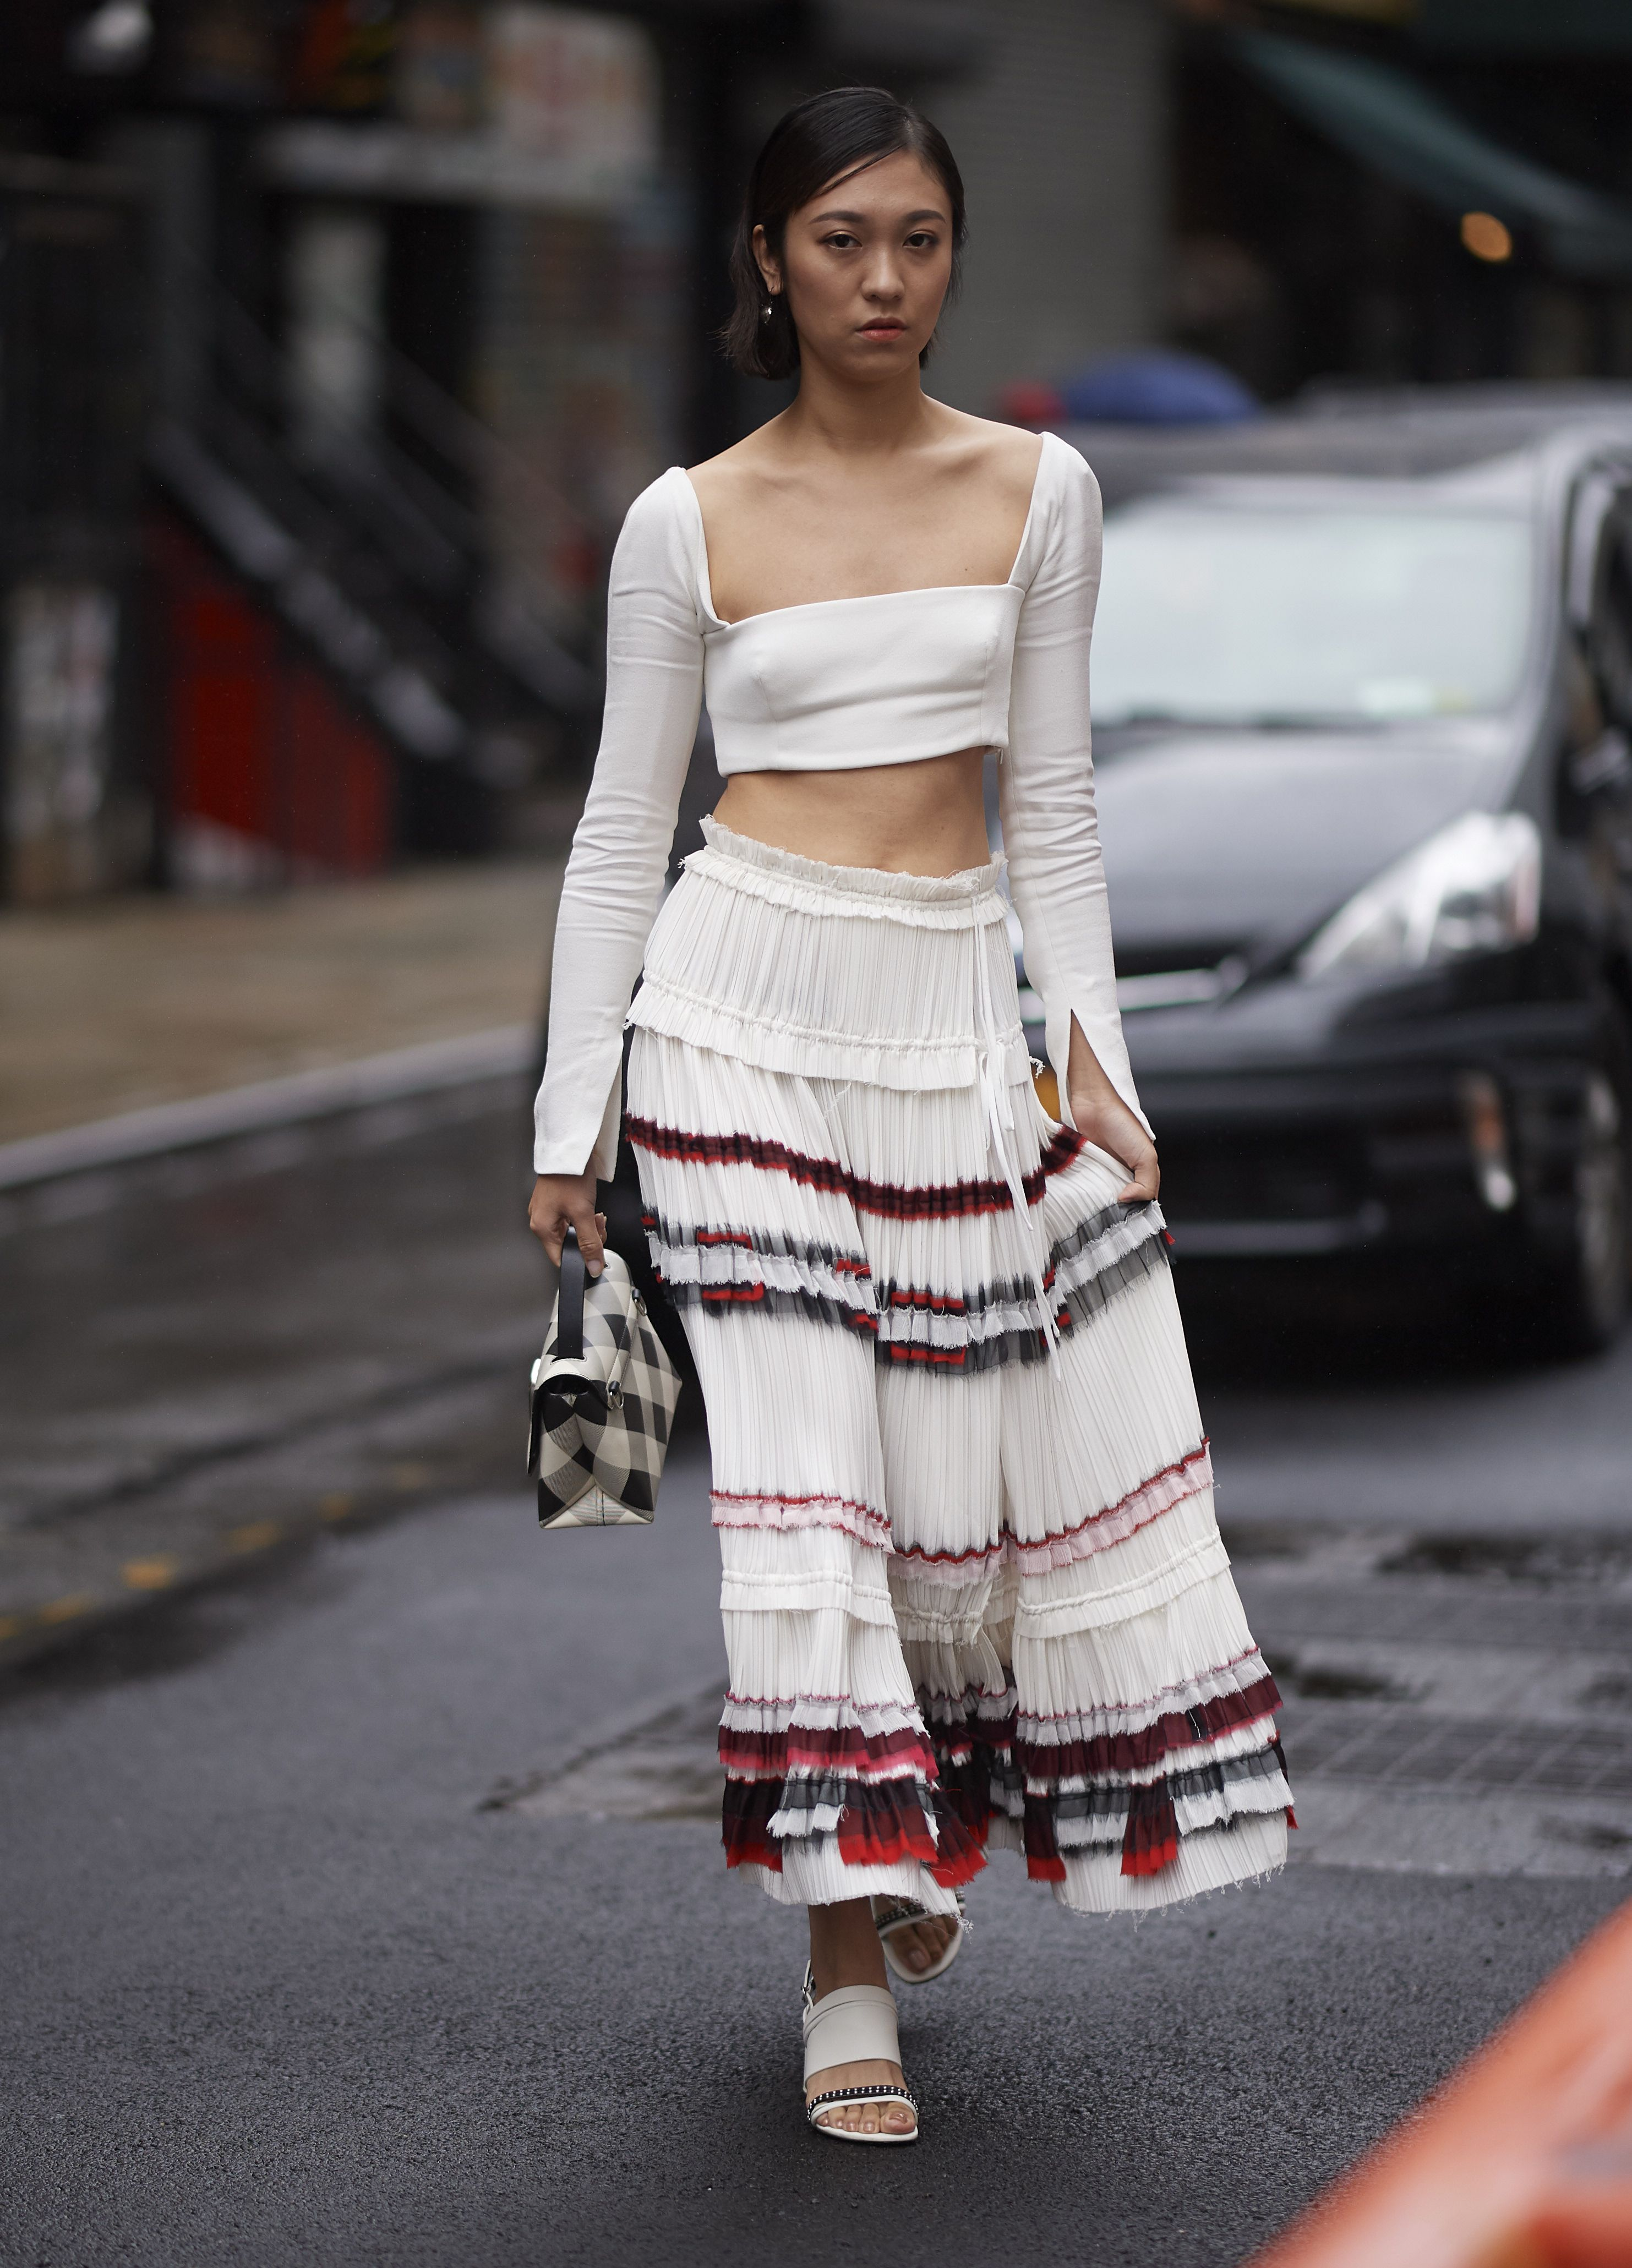 a2a5d0a953 Cute Crop Top Outfit Ideas - What to Wear With a Crop Top